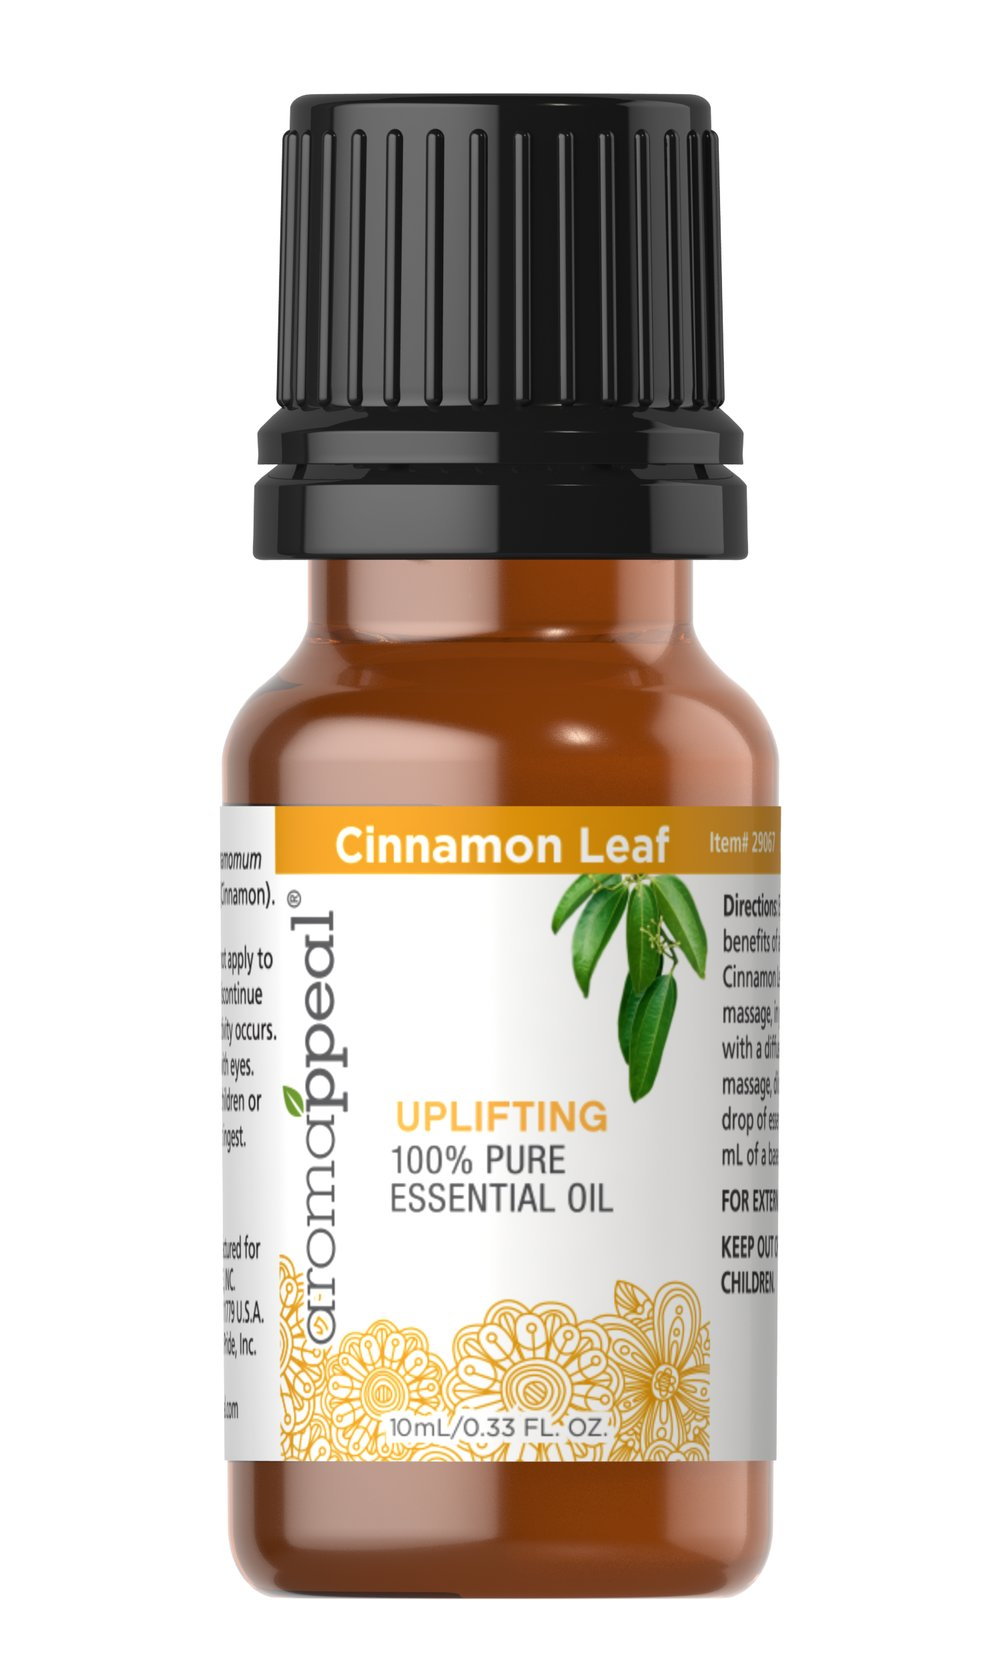 "Cinnamon Leaf 100% Pure Essential Oil <p>Stimulate your senses with the invigorating, uplifting allure of Cinnamon Leaf. Known for its distinctly spicy-sweet aroma.<br /></p><ul><li><span class=""bold-pink"">Traditional Uses:</span> Purifying, stimulating and invigorating, uplifting.  </li><li><span class=""bold-pink"">History:</span>  Stimulate your senses with the invigorating, uplifting allure of  Cinnamon Leaf."